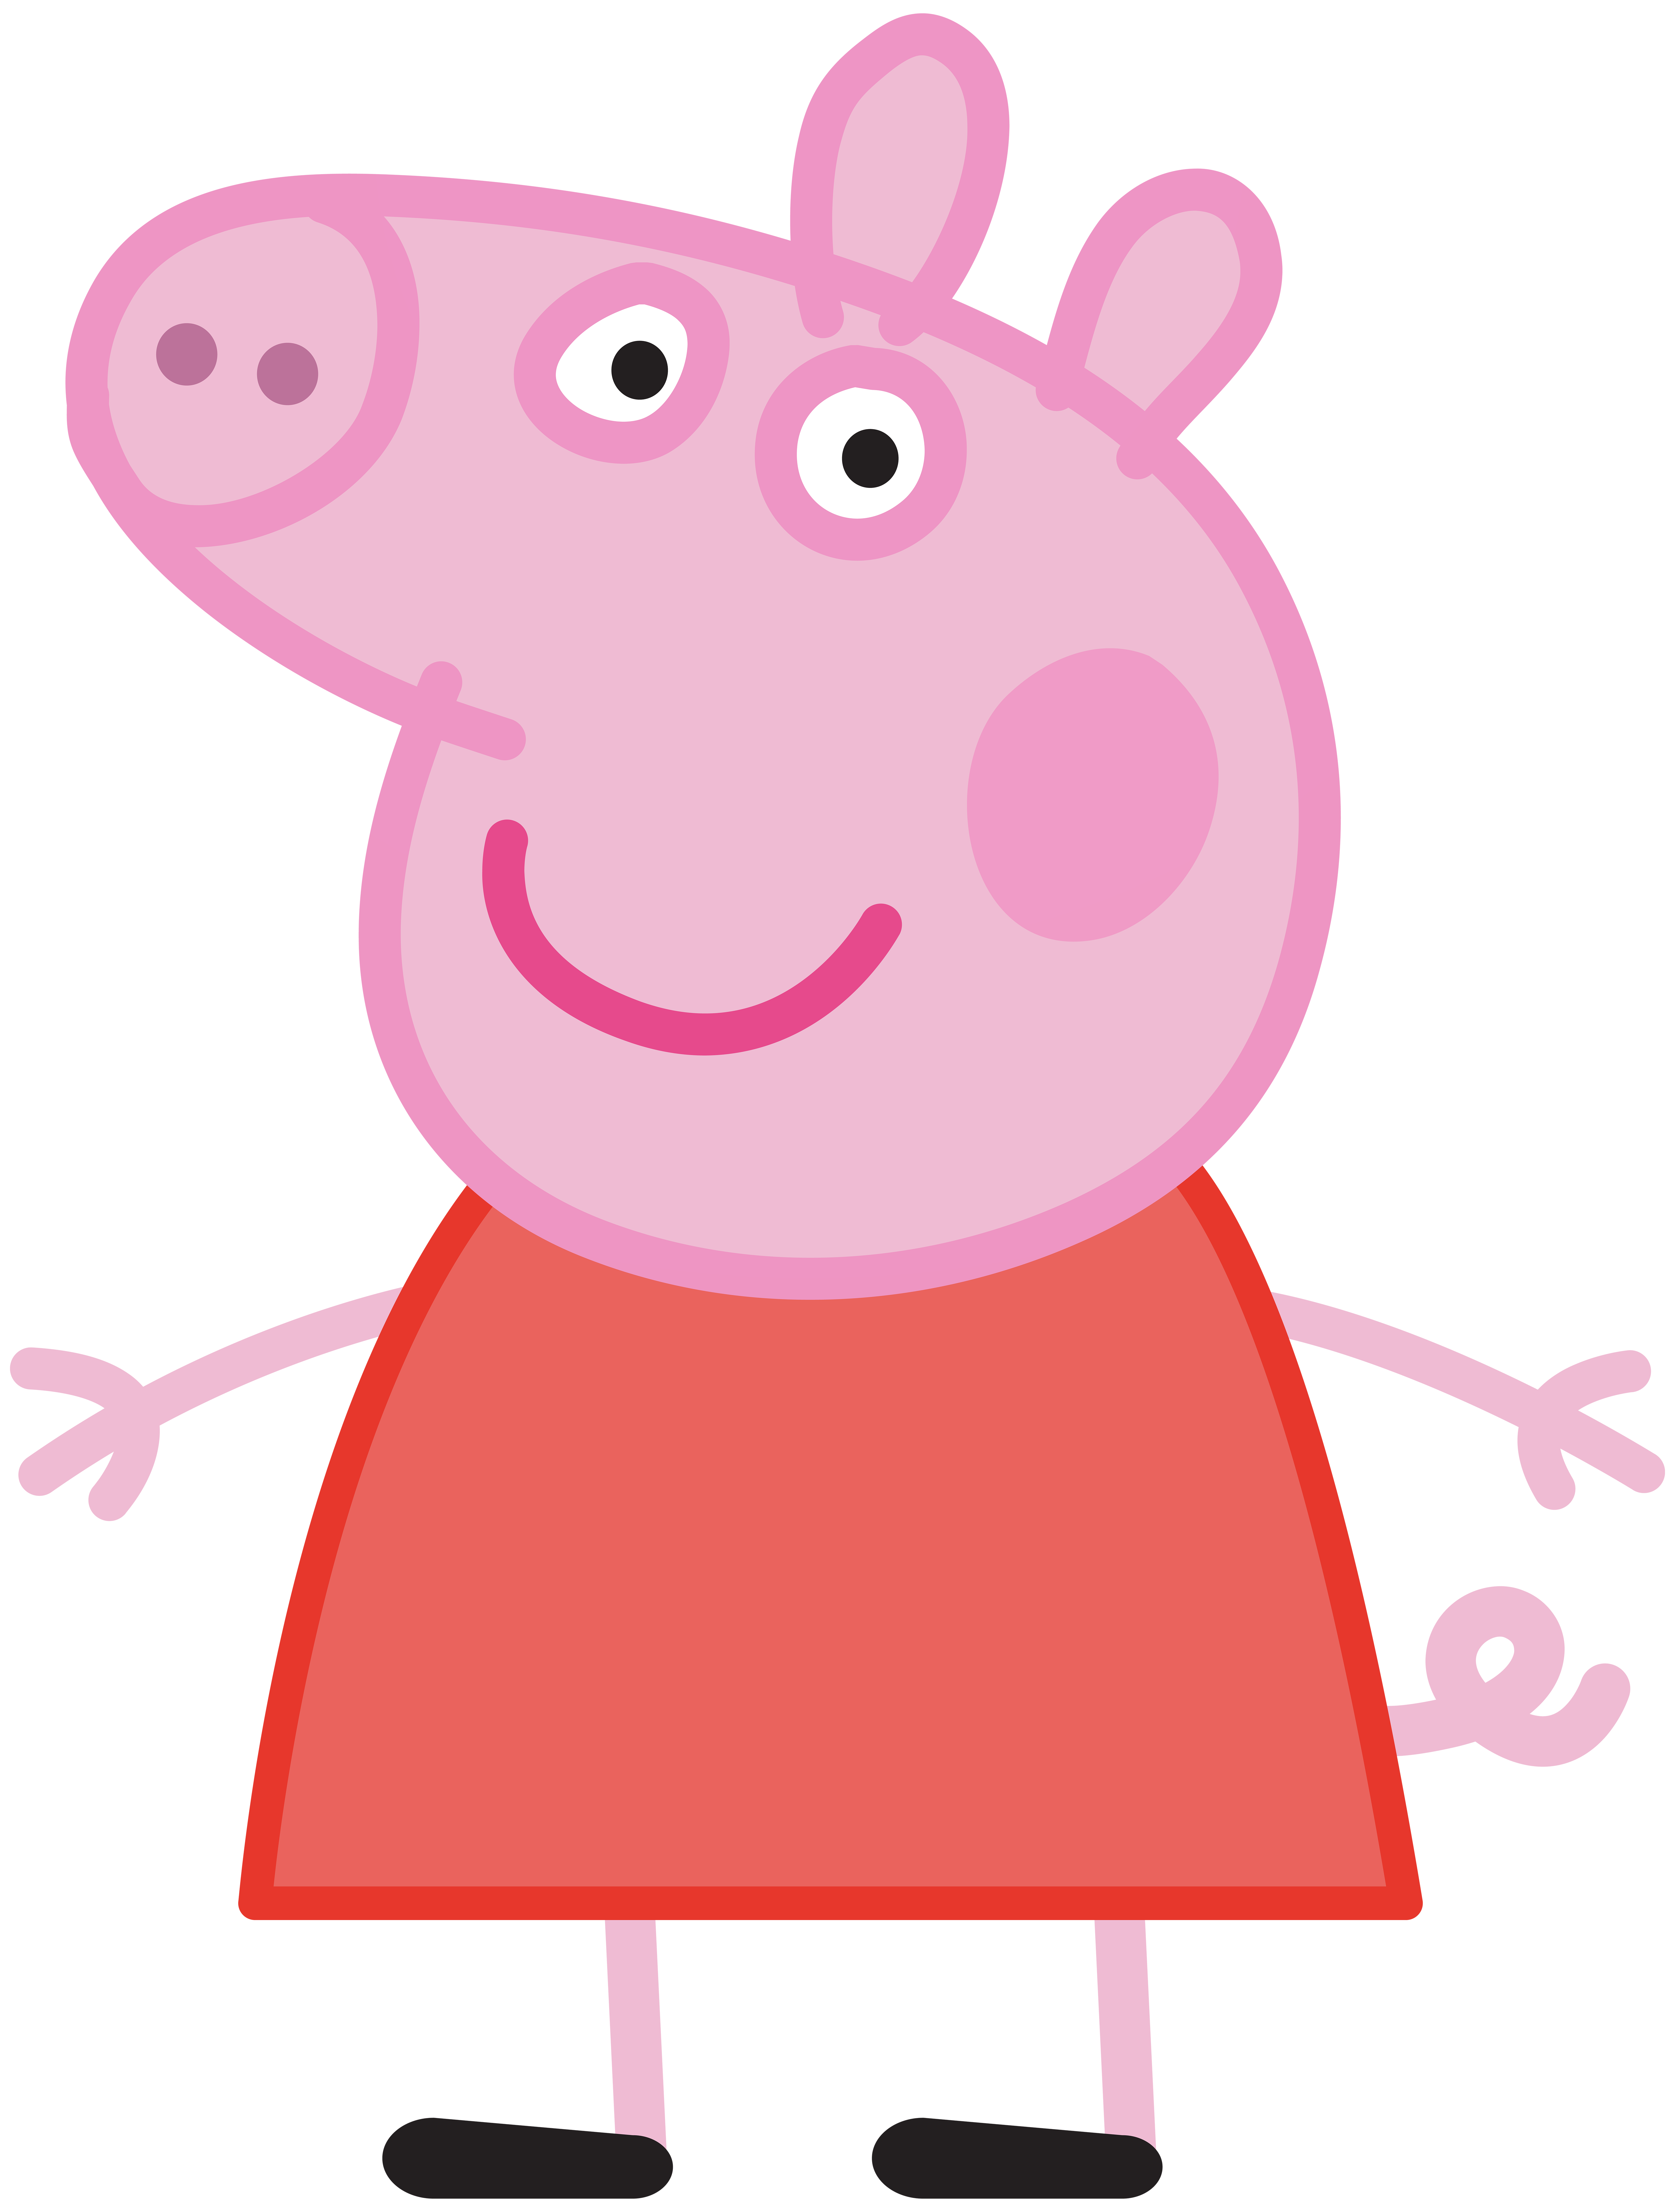 image library download Peppa clipart. Pig transparent png image.